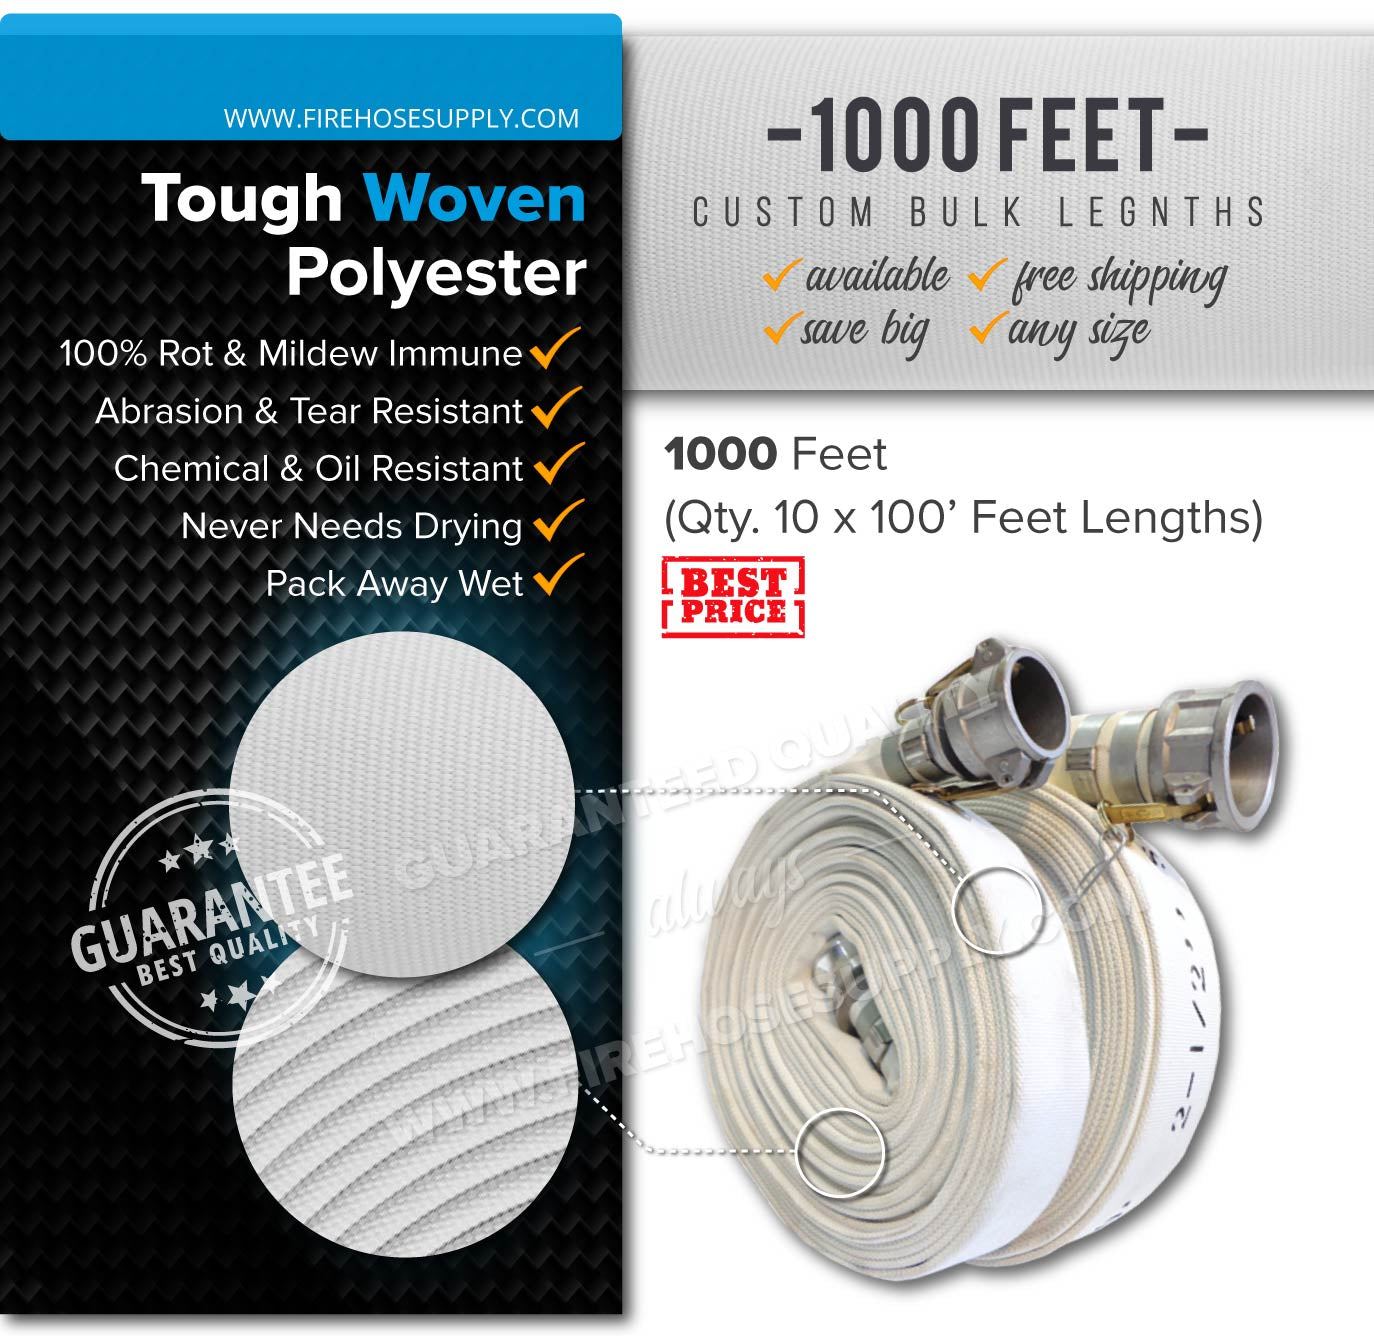 3 inch 1000 feet camlock discharge quick connect hose polyester bulk wholesale (20x50)